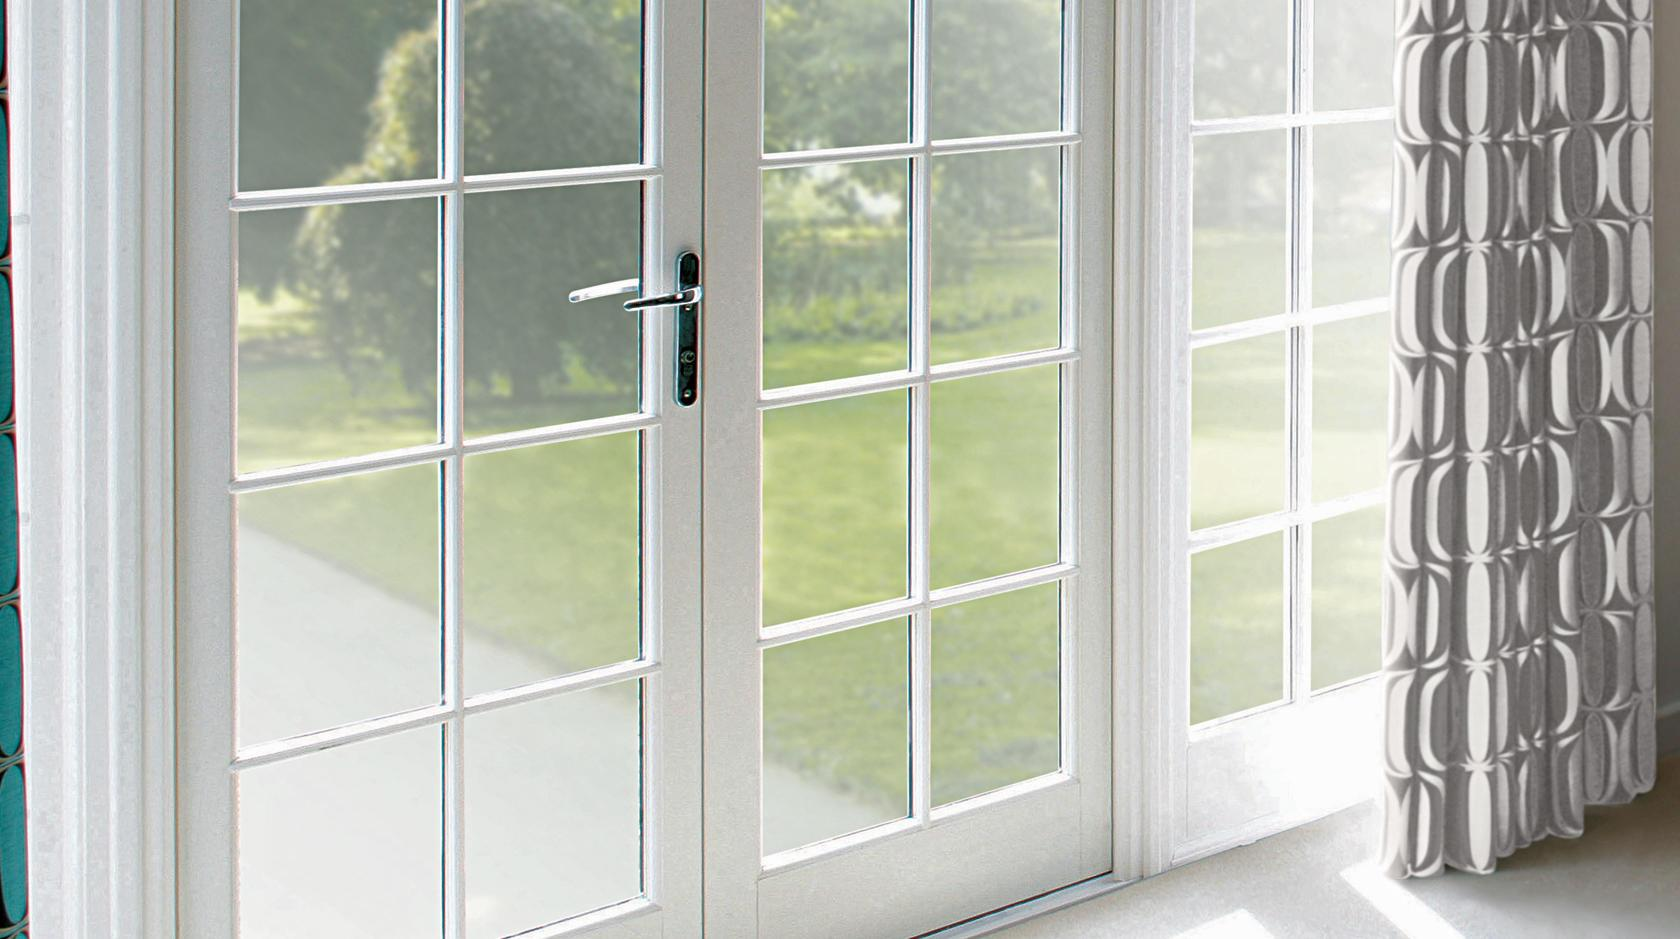 939 #267578 French Doors Howarth Timber Windows And Doors pic Window And Doors 45311680